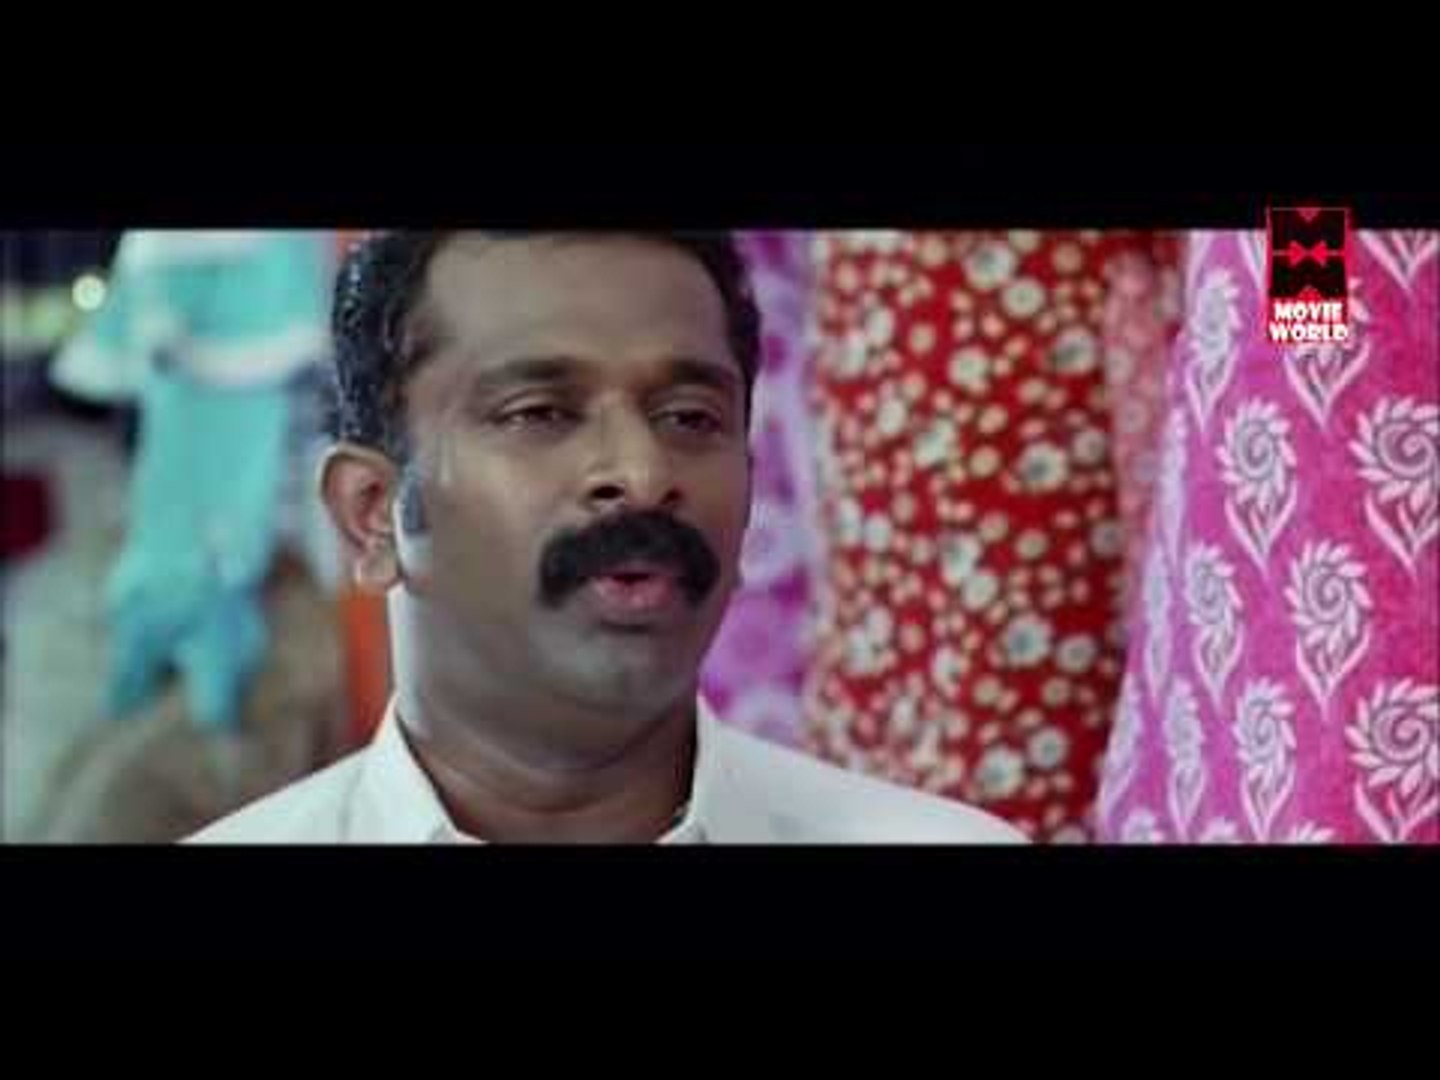 Tamil Full Movie 2016 New Releases # Tamil New Movies 2016 Full Movie # Tamil  Movie 18+ New 2016